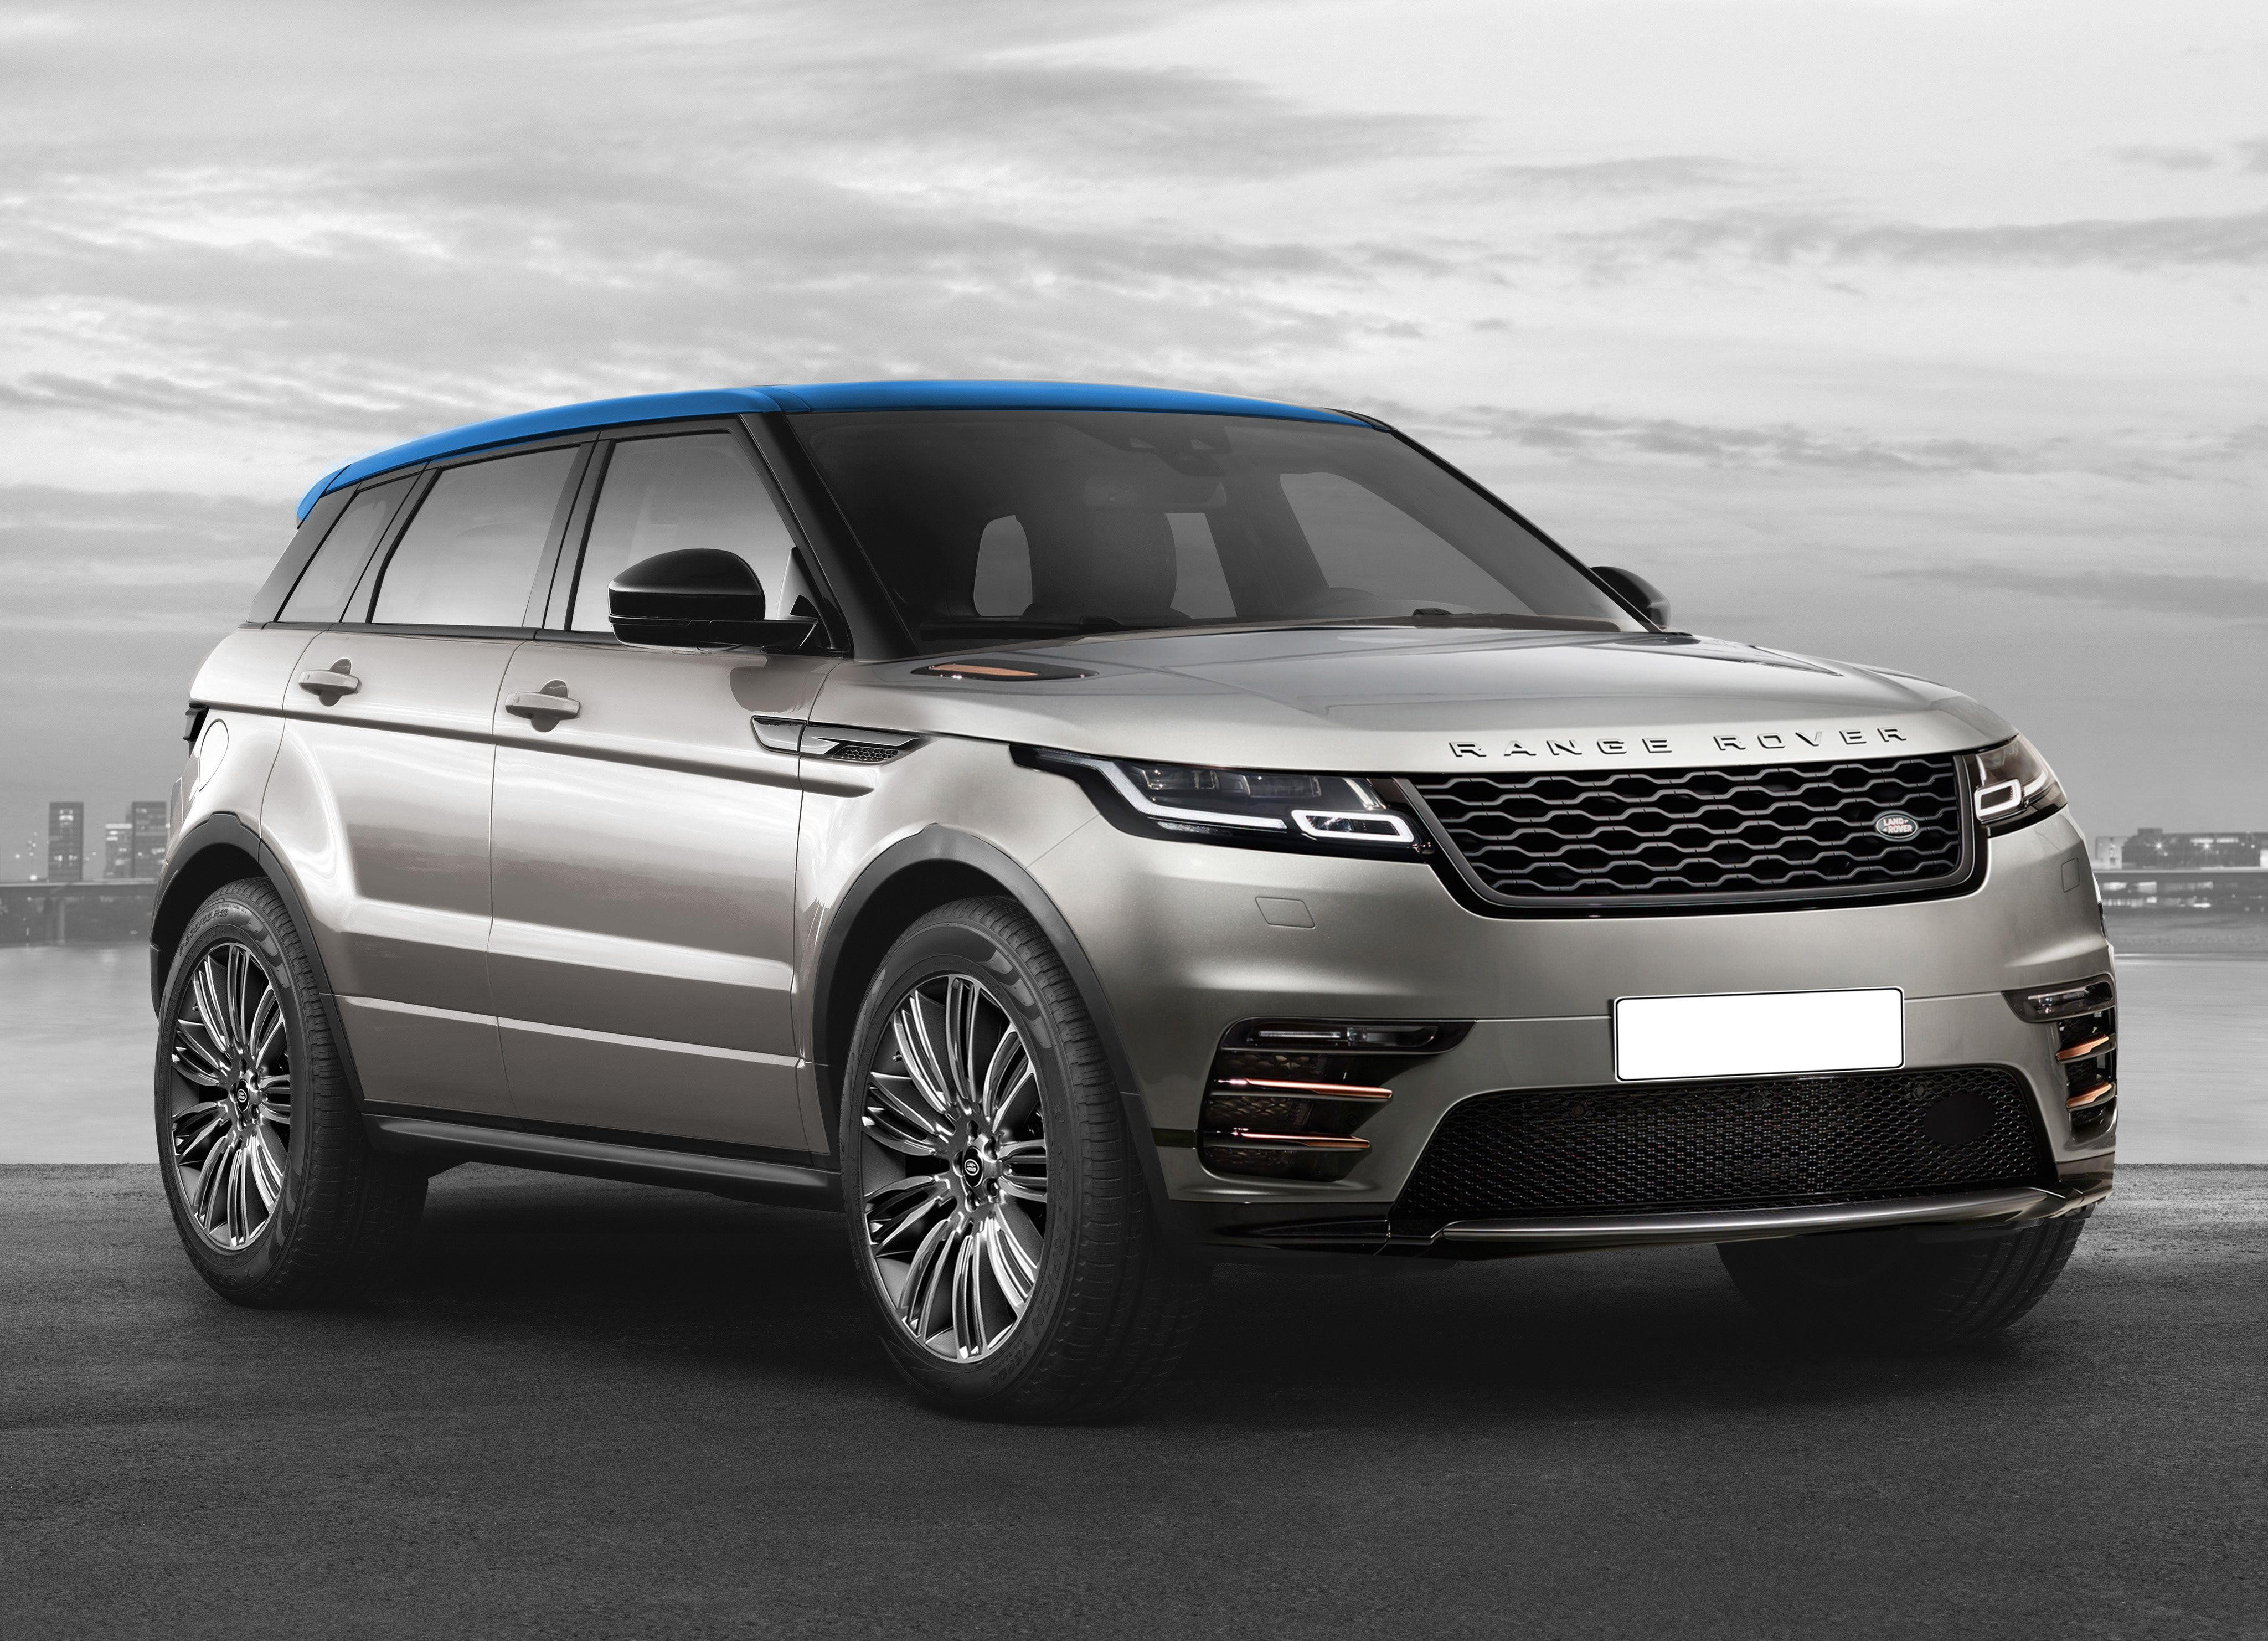 """Check out my Behance project """"Land Rover Range Rover"""